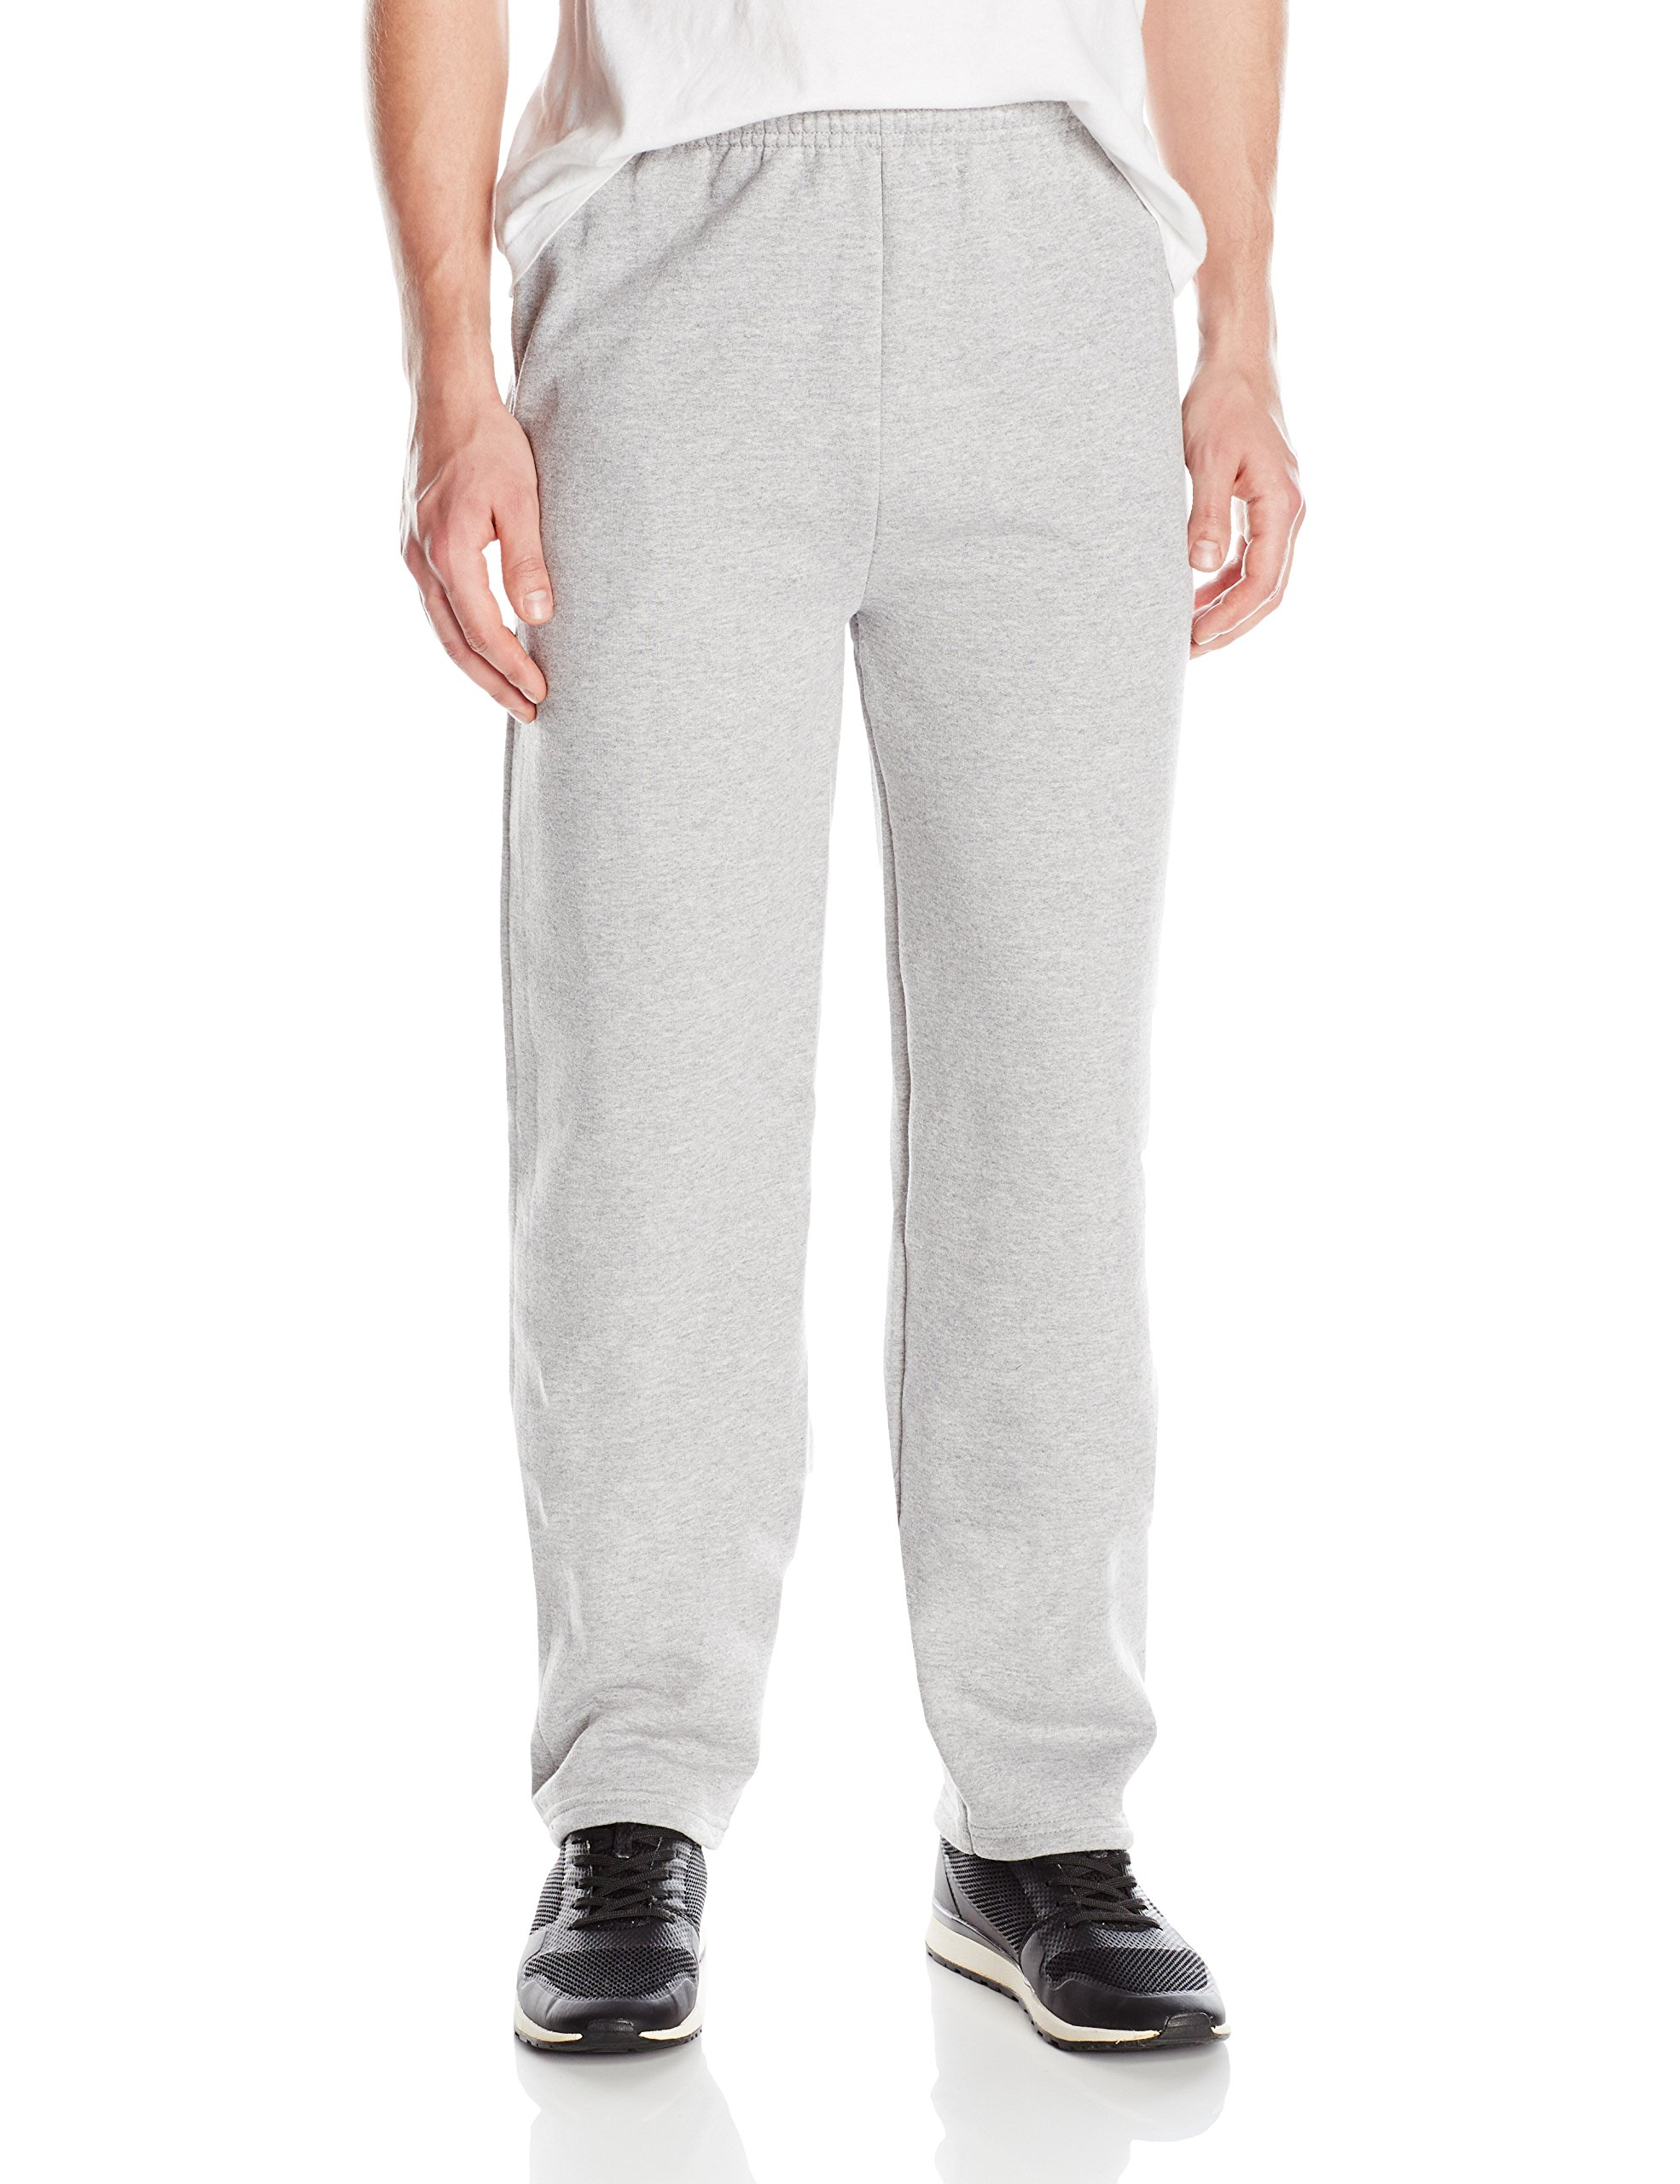 Hanes Men's EcoSmart Open Leg Fleece Pant with Pockets, Grey Heather, XL